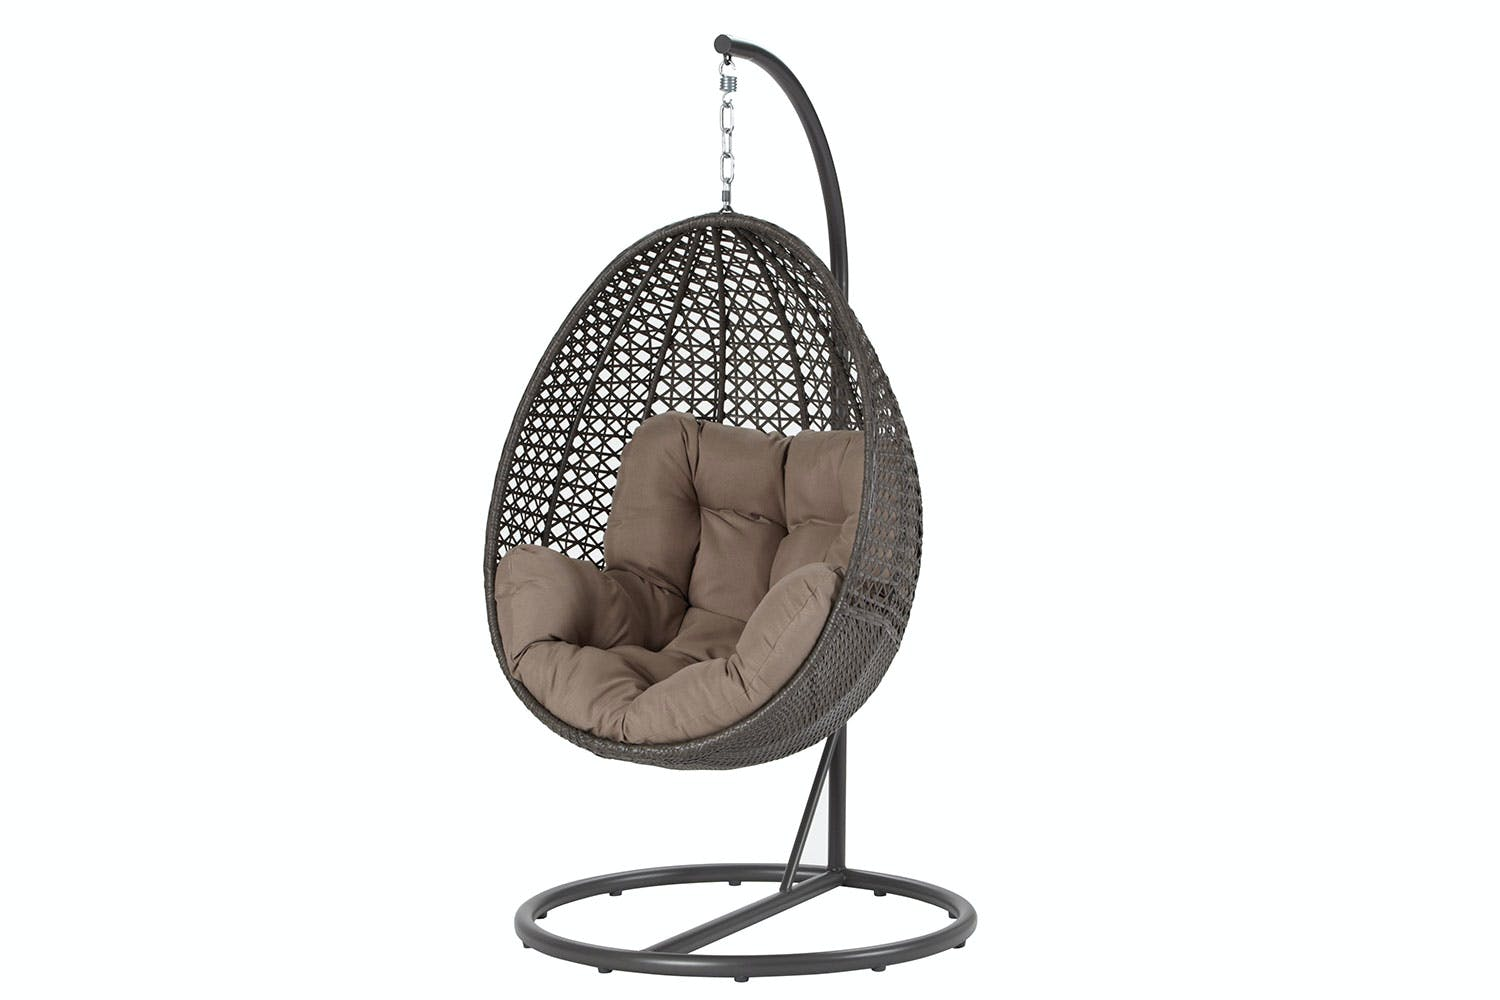 Design Egg Chair malta hanging egg chair harvey norman new zealand chair